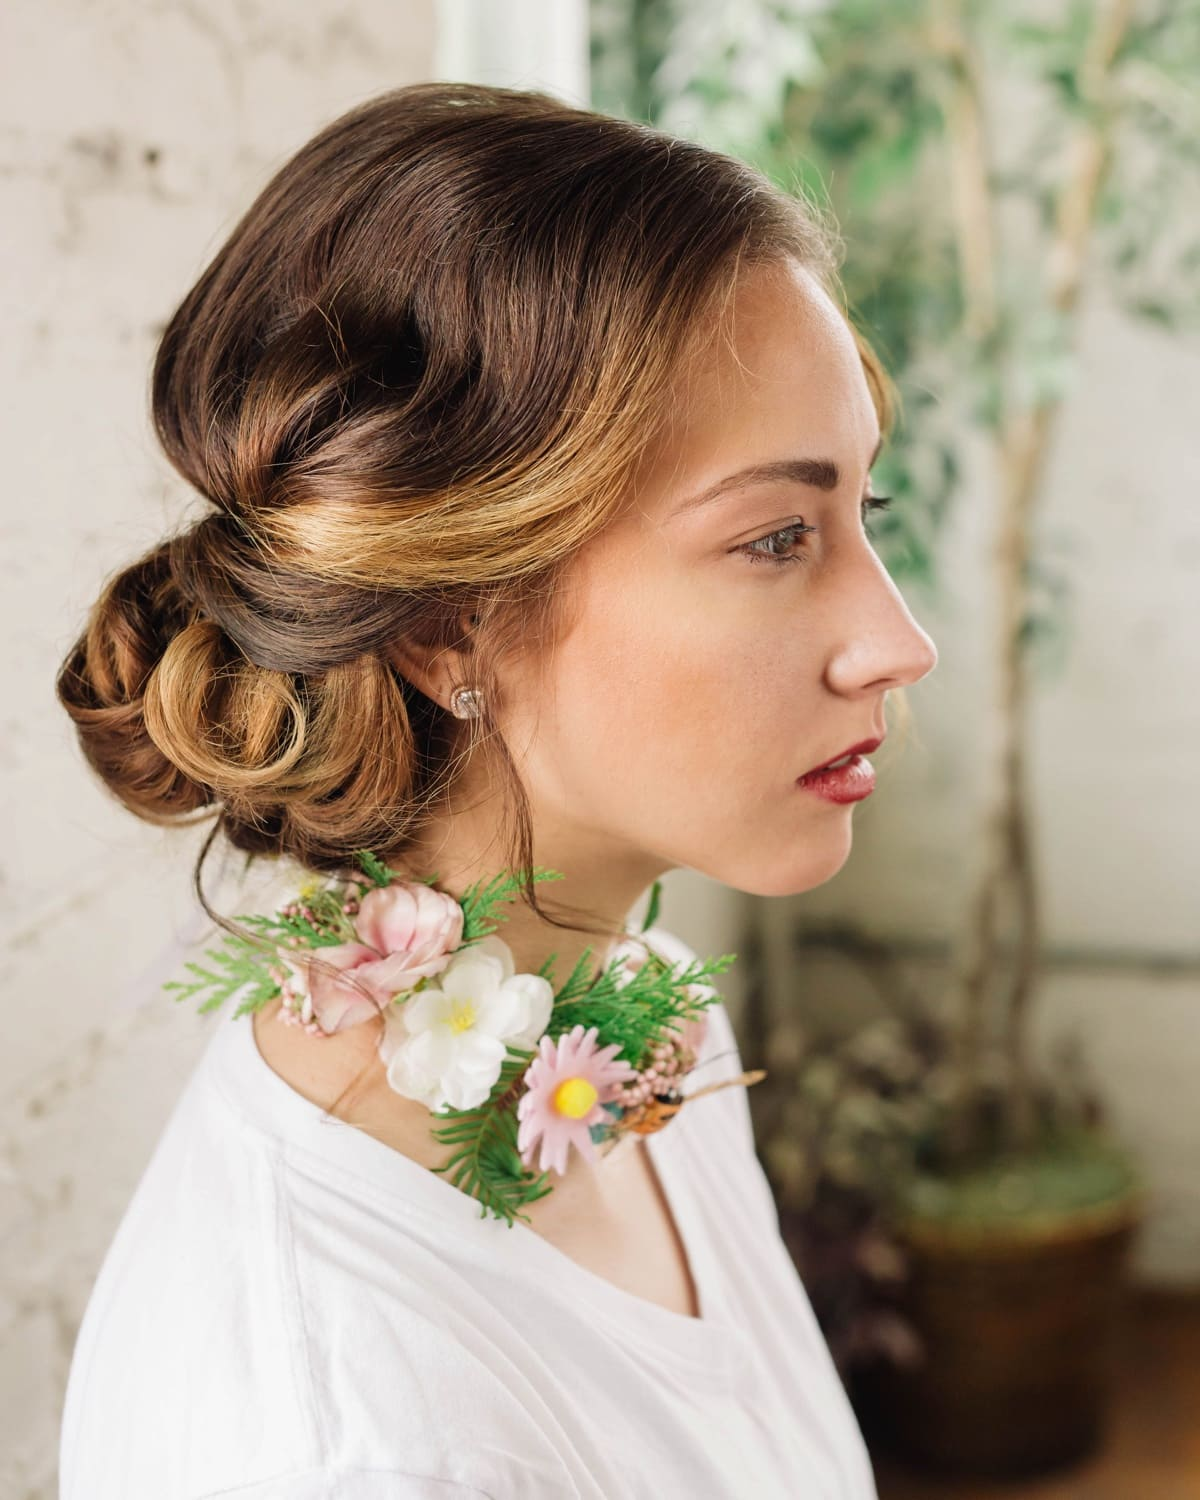 10 Updo Styles for Your Next Special Occasion from La Pomponnee Beauty Artisans